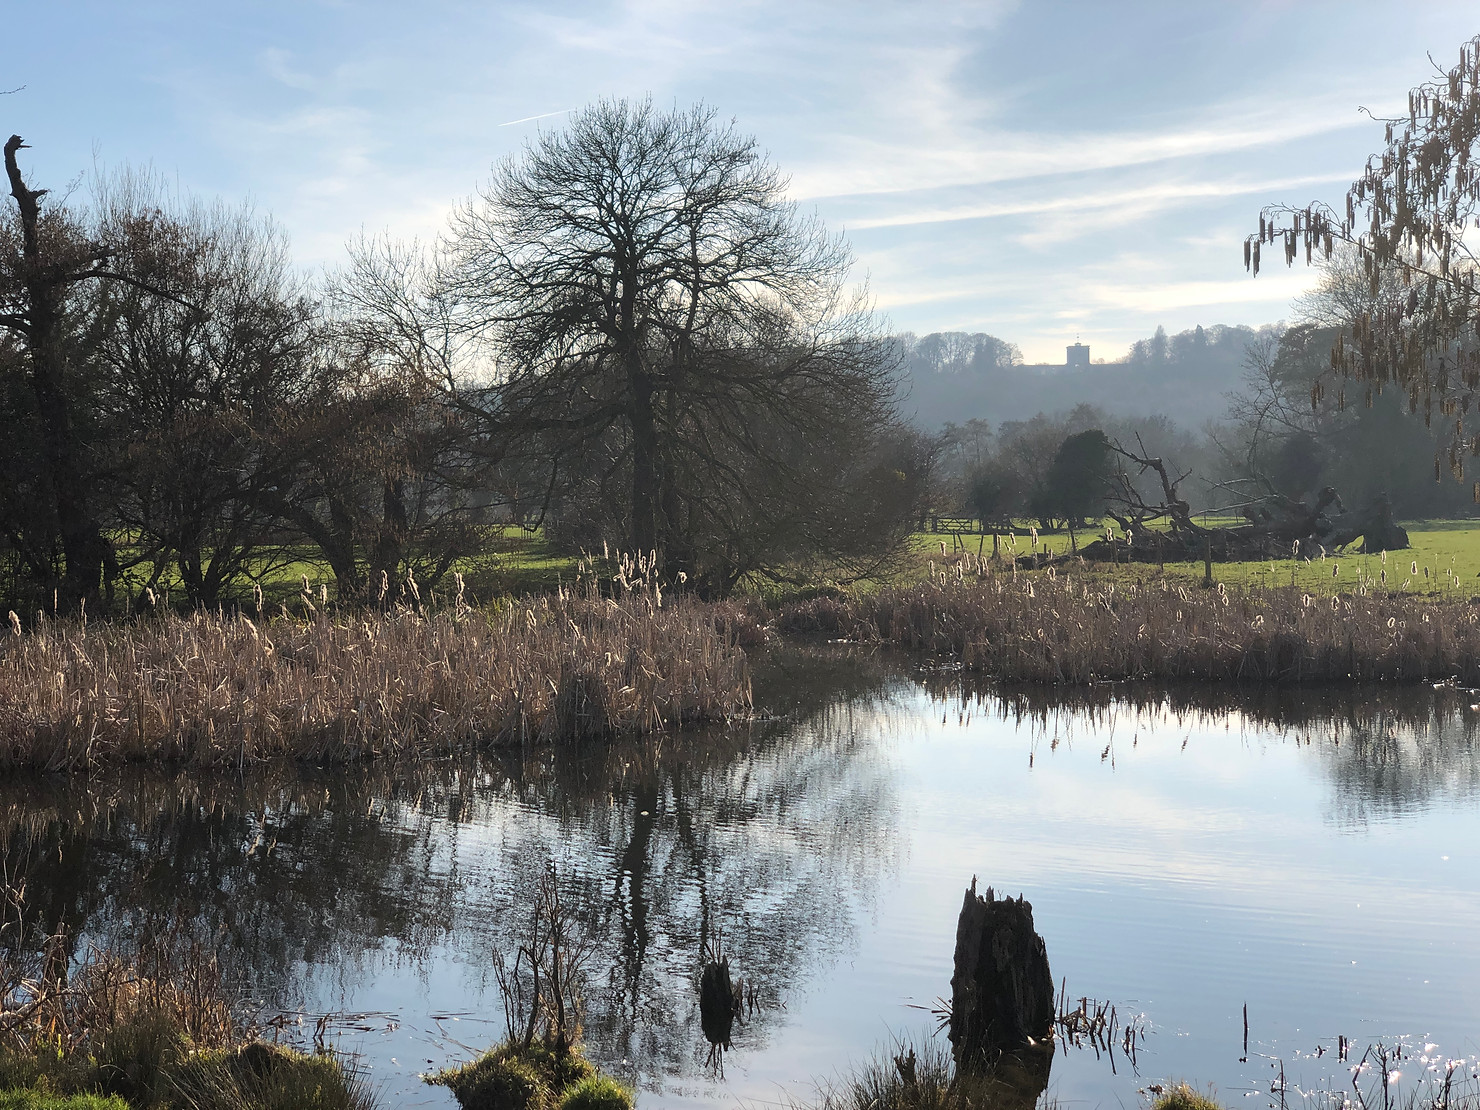 Pond at Ankerwycke with views of the Runnymede Memorial